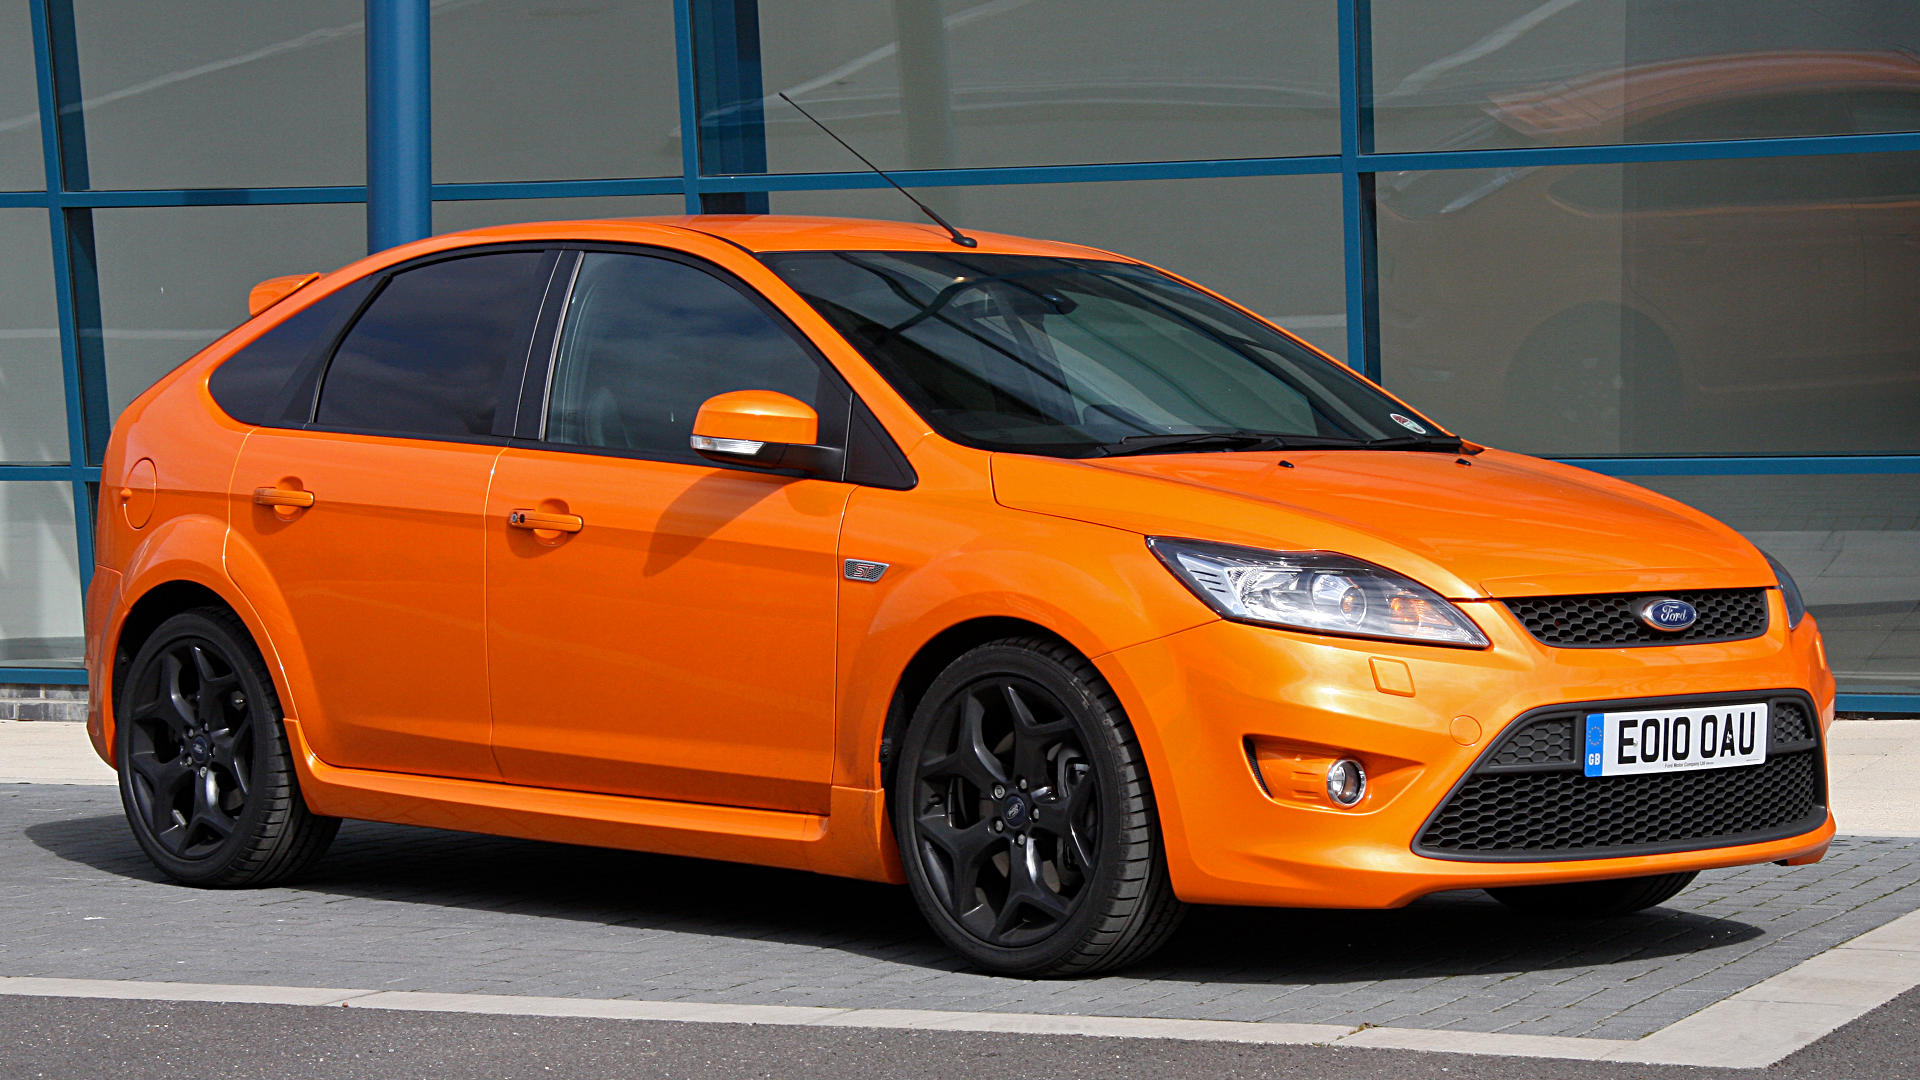 Cars with Turbo for Sale Near Me Luxury the 10 Most Enjoyable Cars You Can In Australia for $10 000